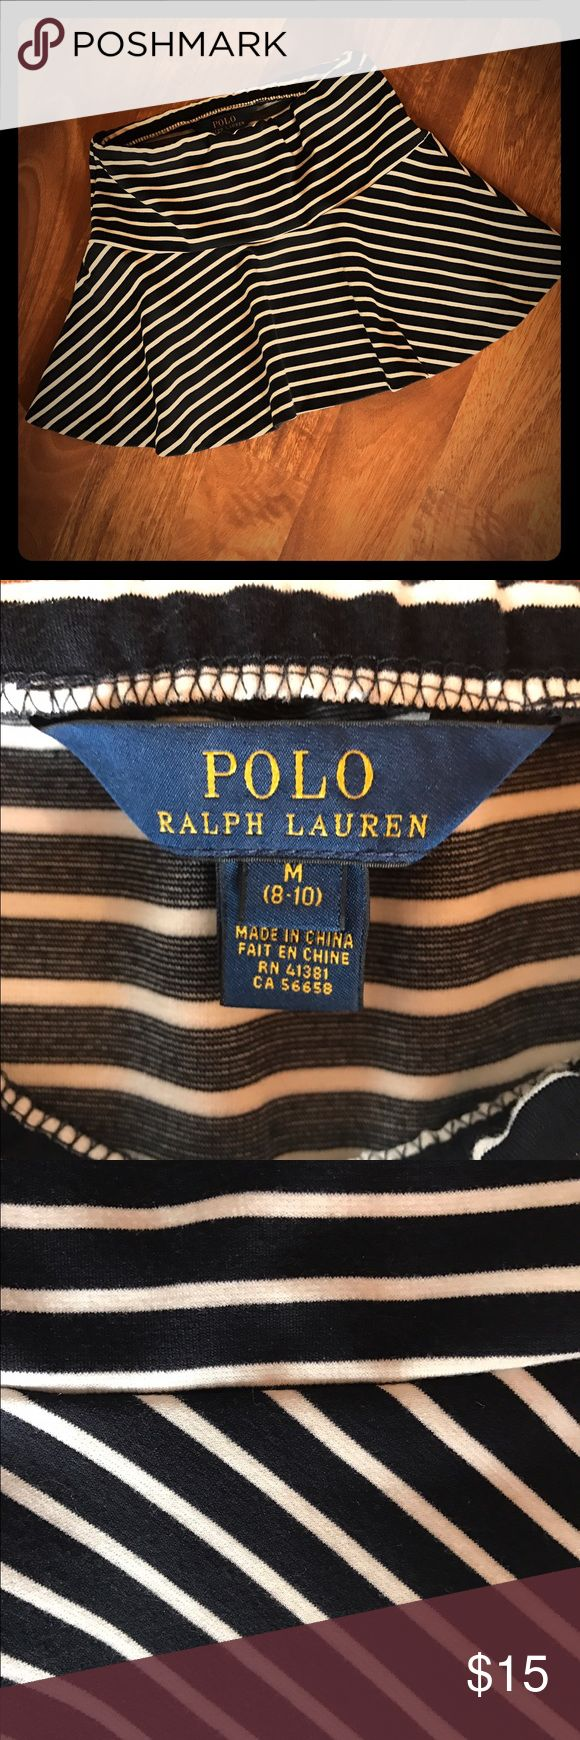 {Polo Ralph Lauren} Girl's Skirt Cute basic! Size M (8/10) girl's Polo Ralph Lauren skirt in navy/white stripes. Excellent used condition! All of my items come from my smoke-free home. Bundle and save!!! Polo by Ralph Lauren Bottoms Skirts